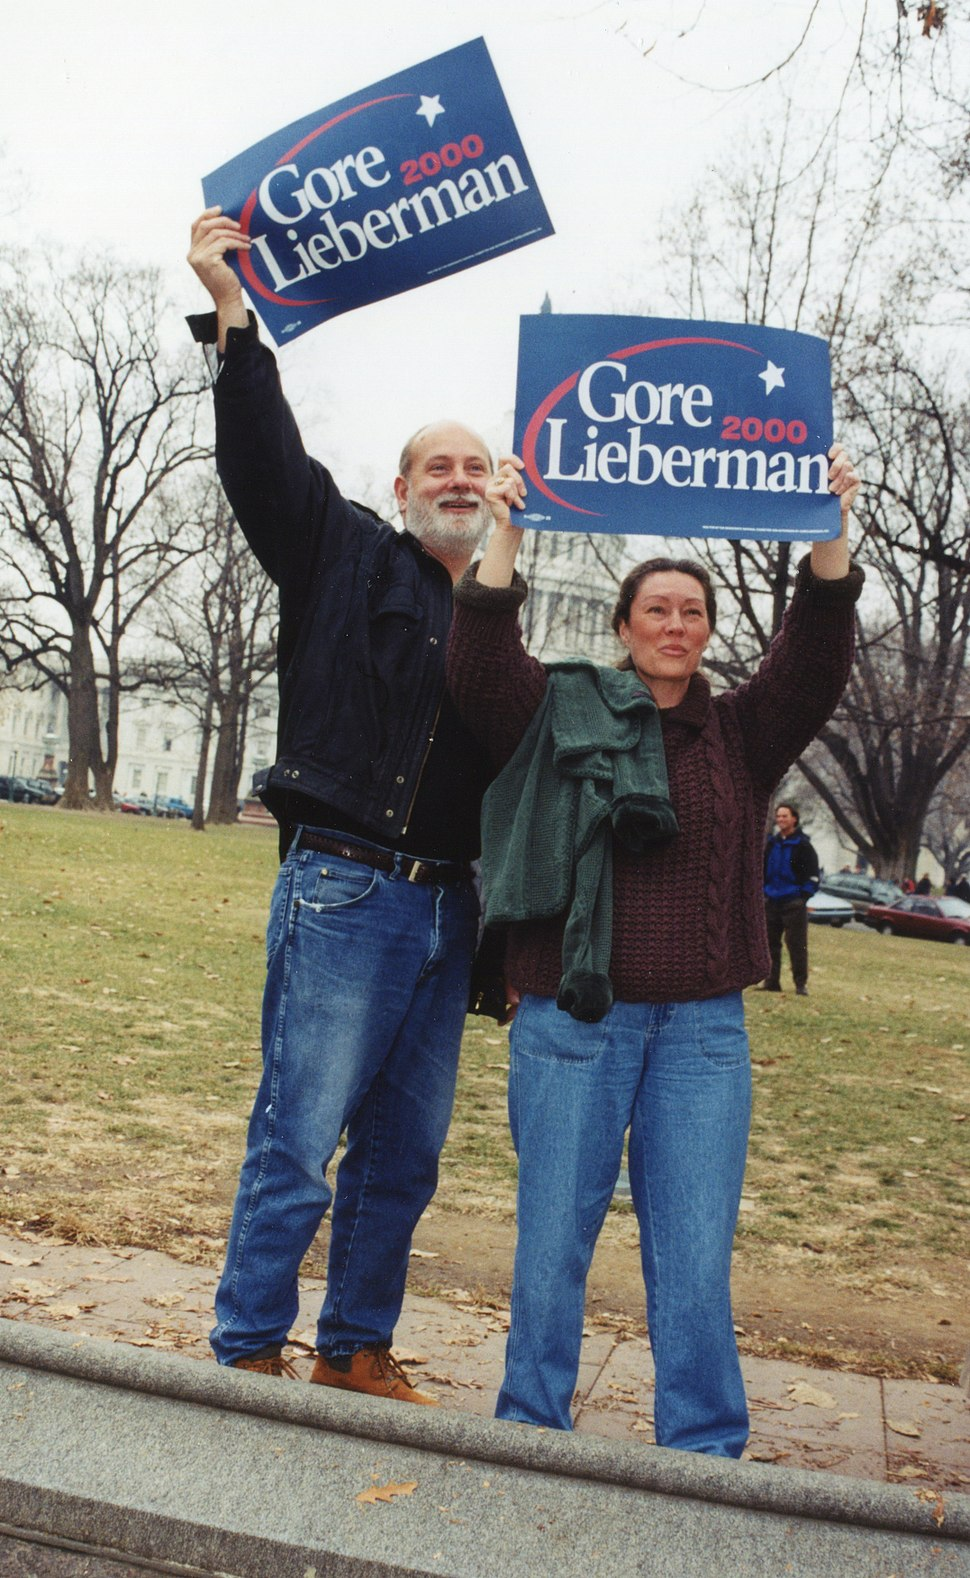 20.ElectionProtest.USSC.WDC.11December2000 (21746677994)